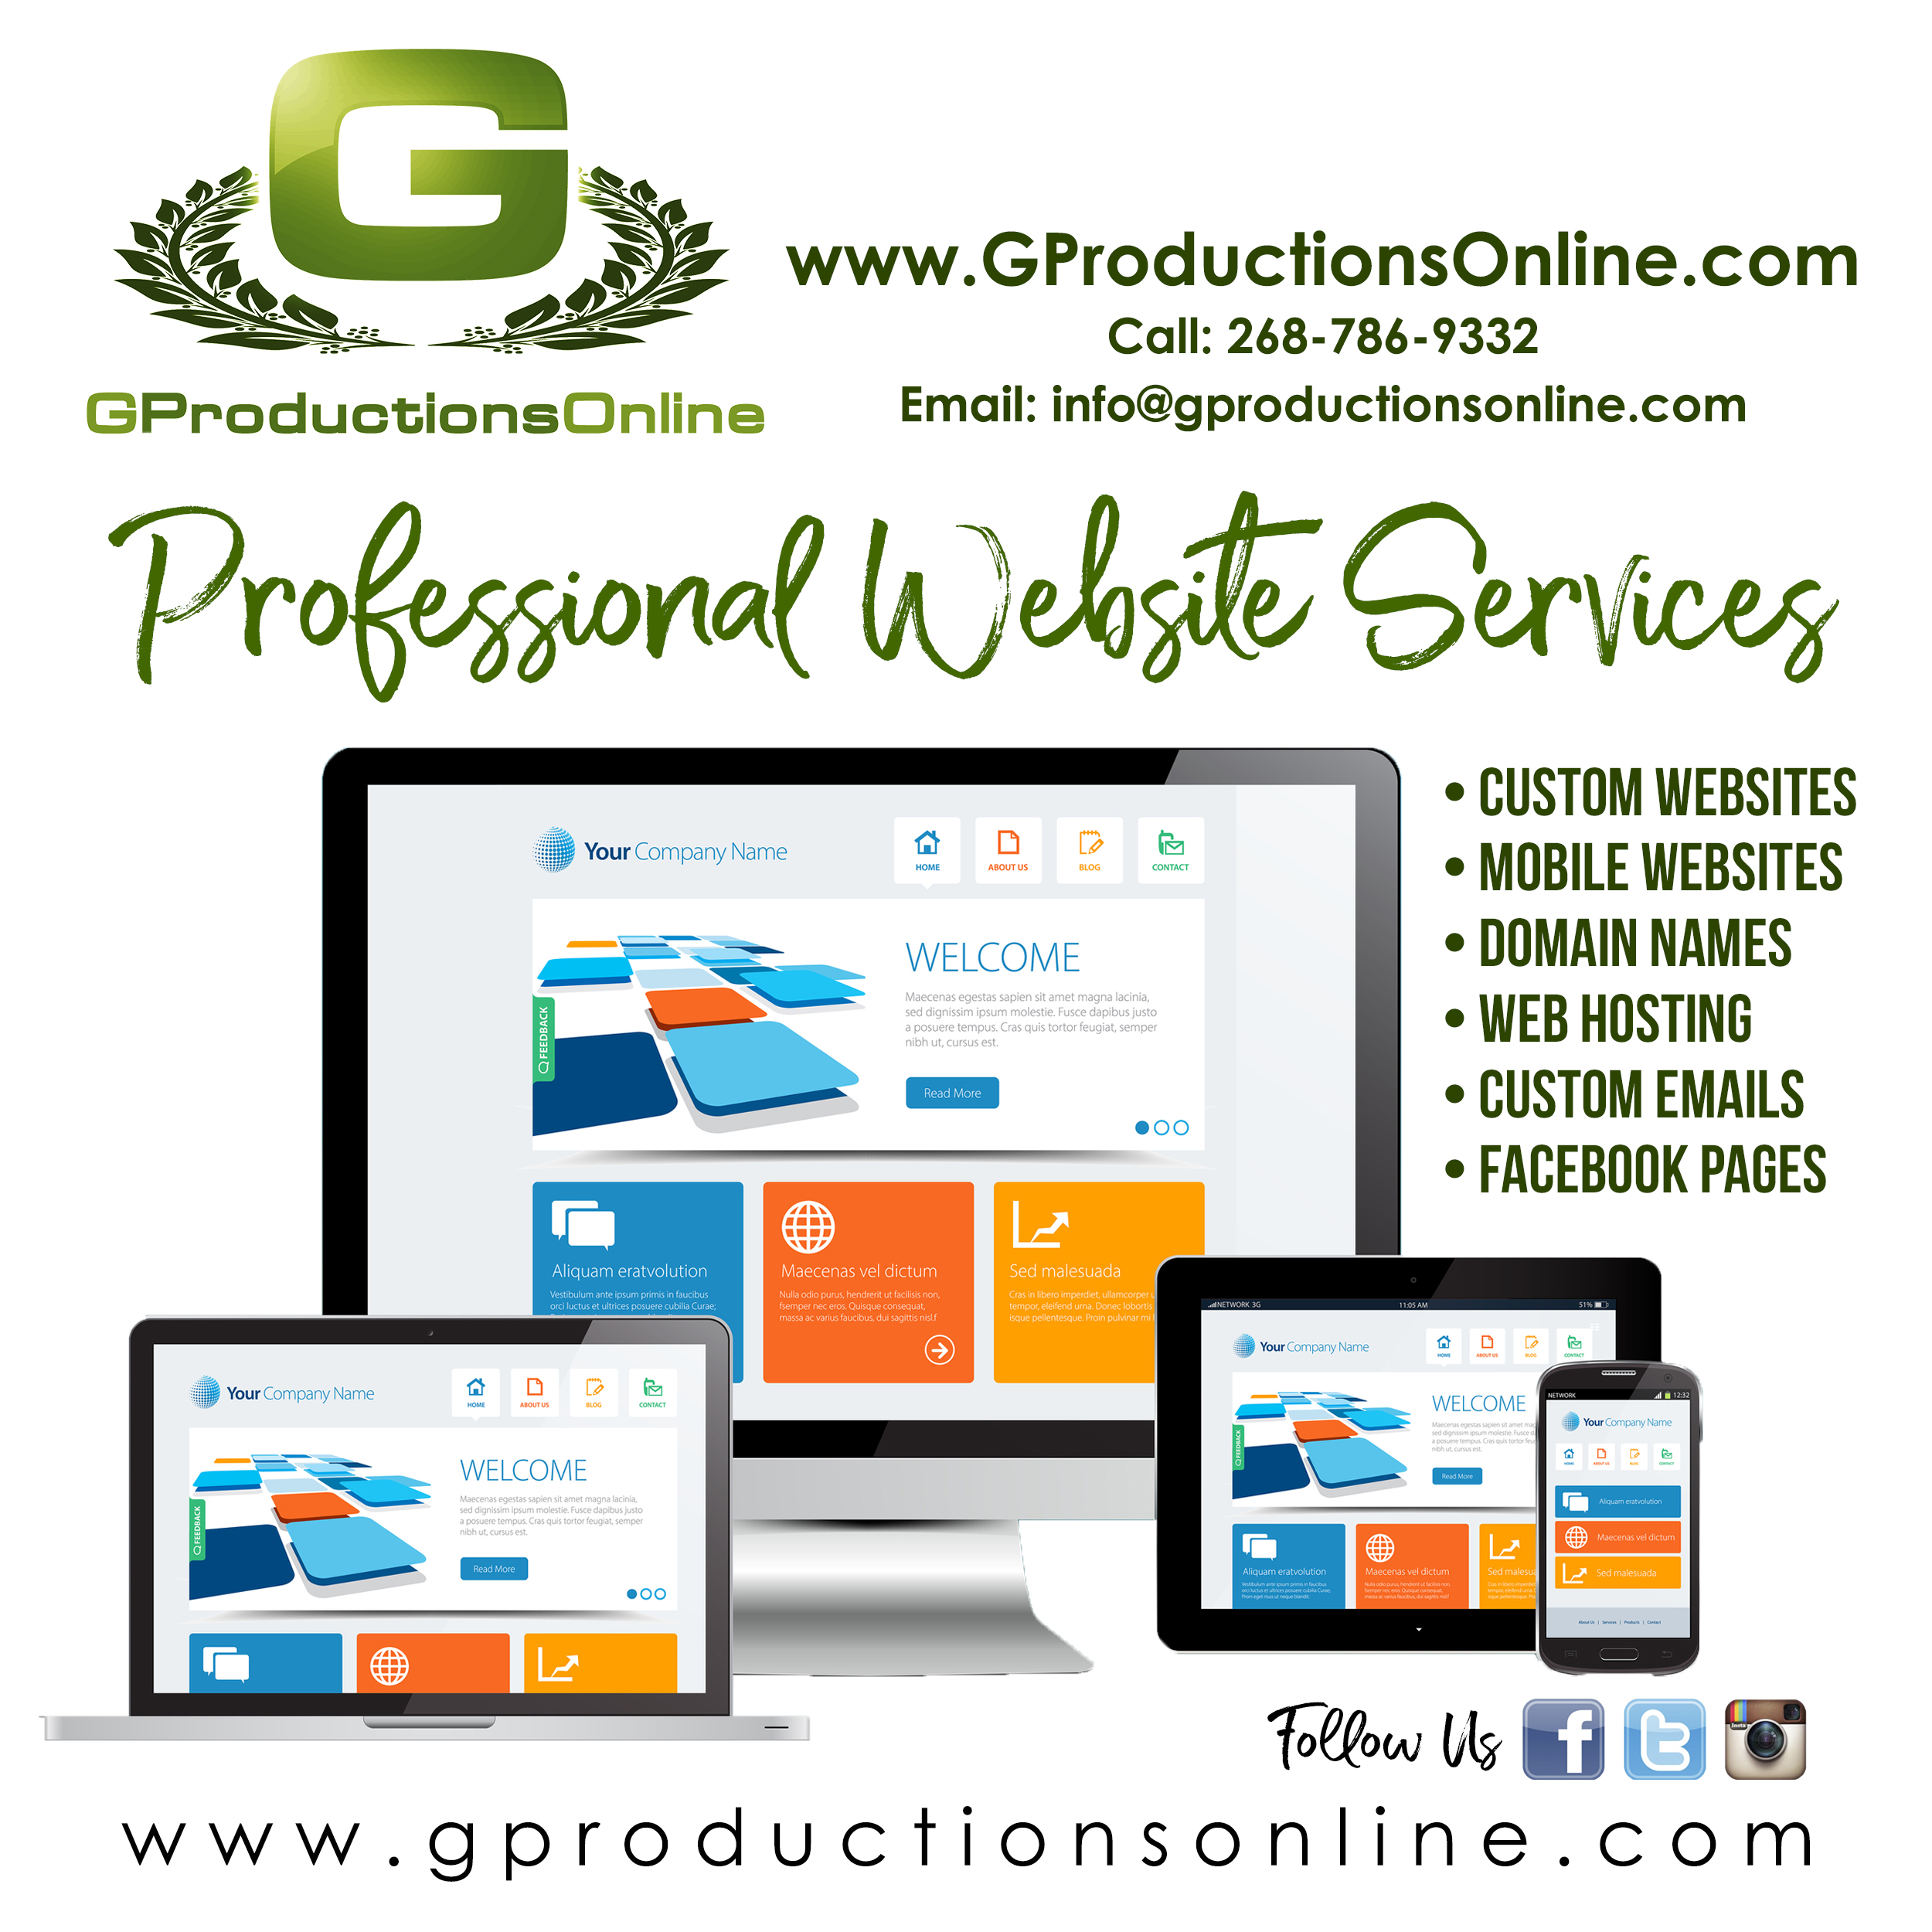 GPro-Website-Designs